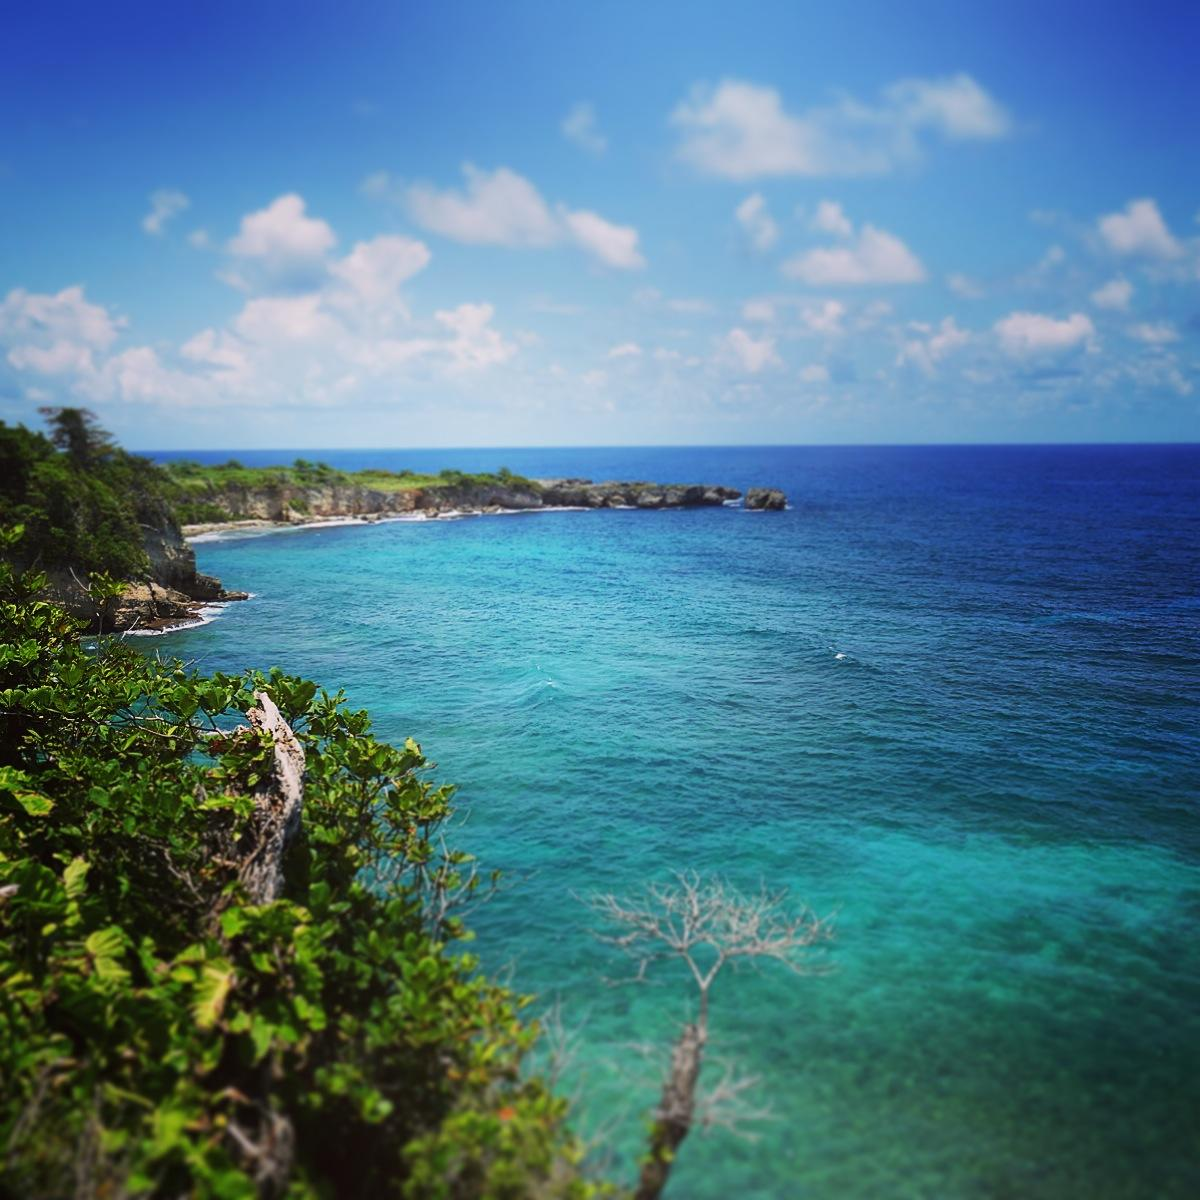 A scenic overlook along Jamaica's coastline is a good stakeout for White-tailed Tropicbirds. Noah Strycker